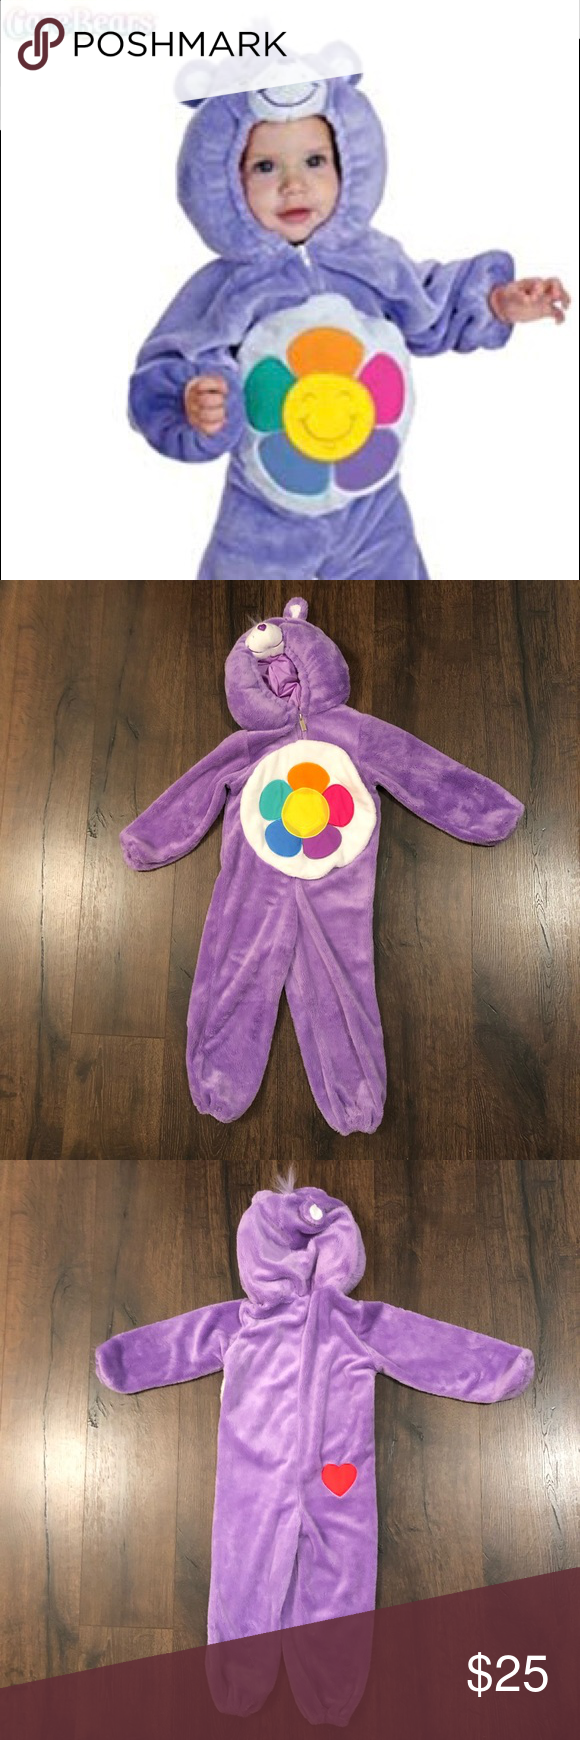 Toddler Care Bears Costume 3T-4T Great condition  Smoke free Pet free Costumes #carebearcostume